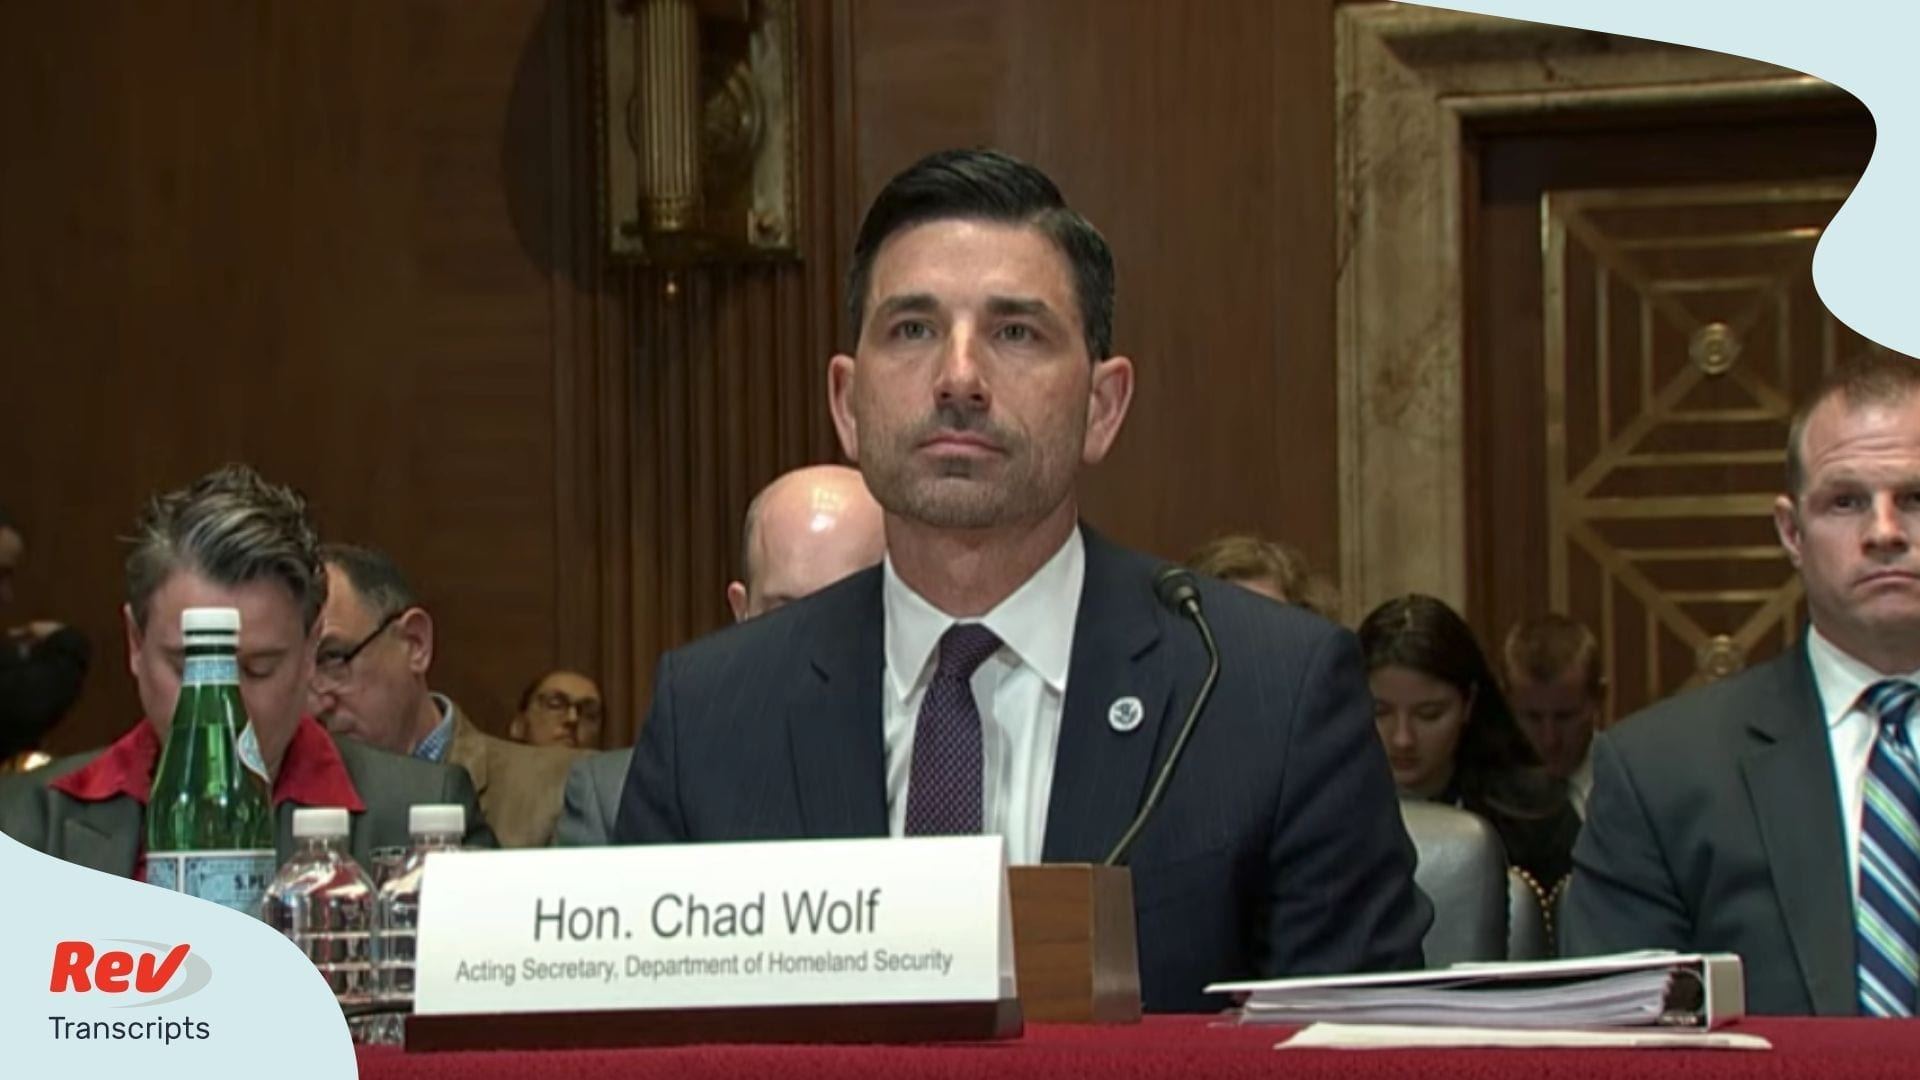 Secretary of Homeland Security Chad Wolf Testimony Transcript